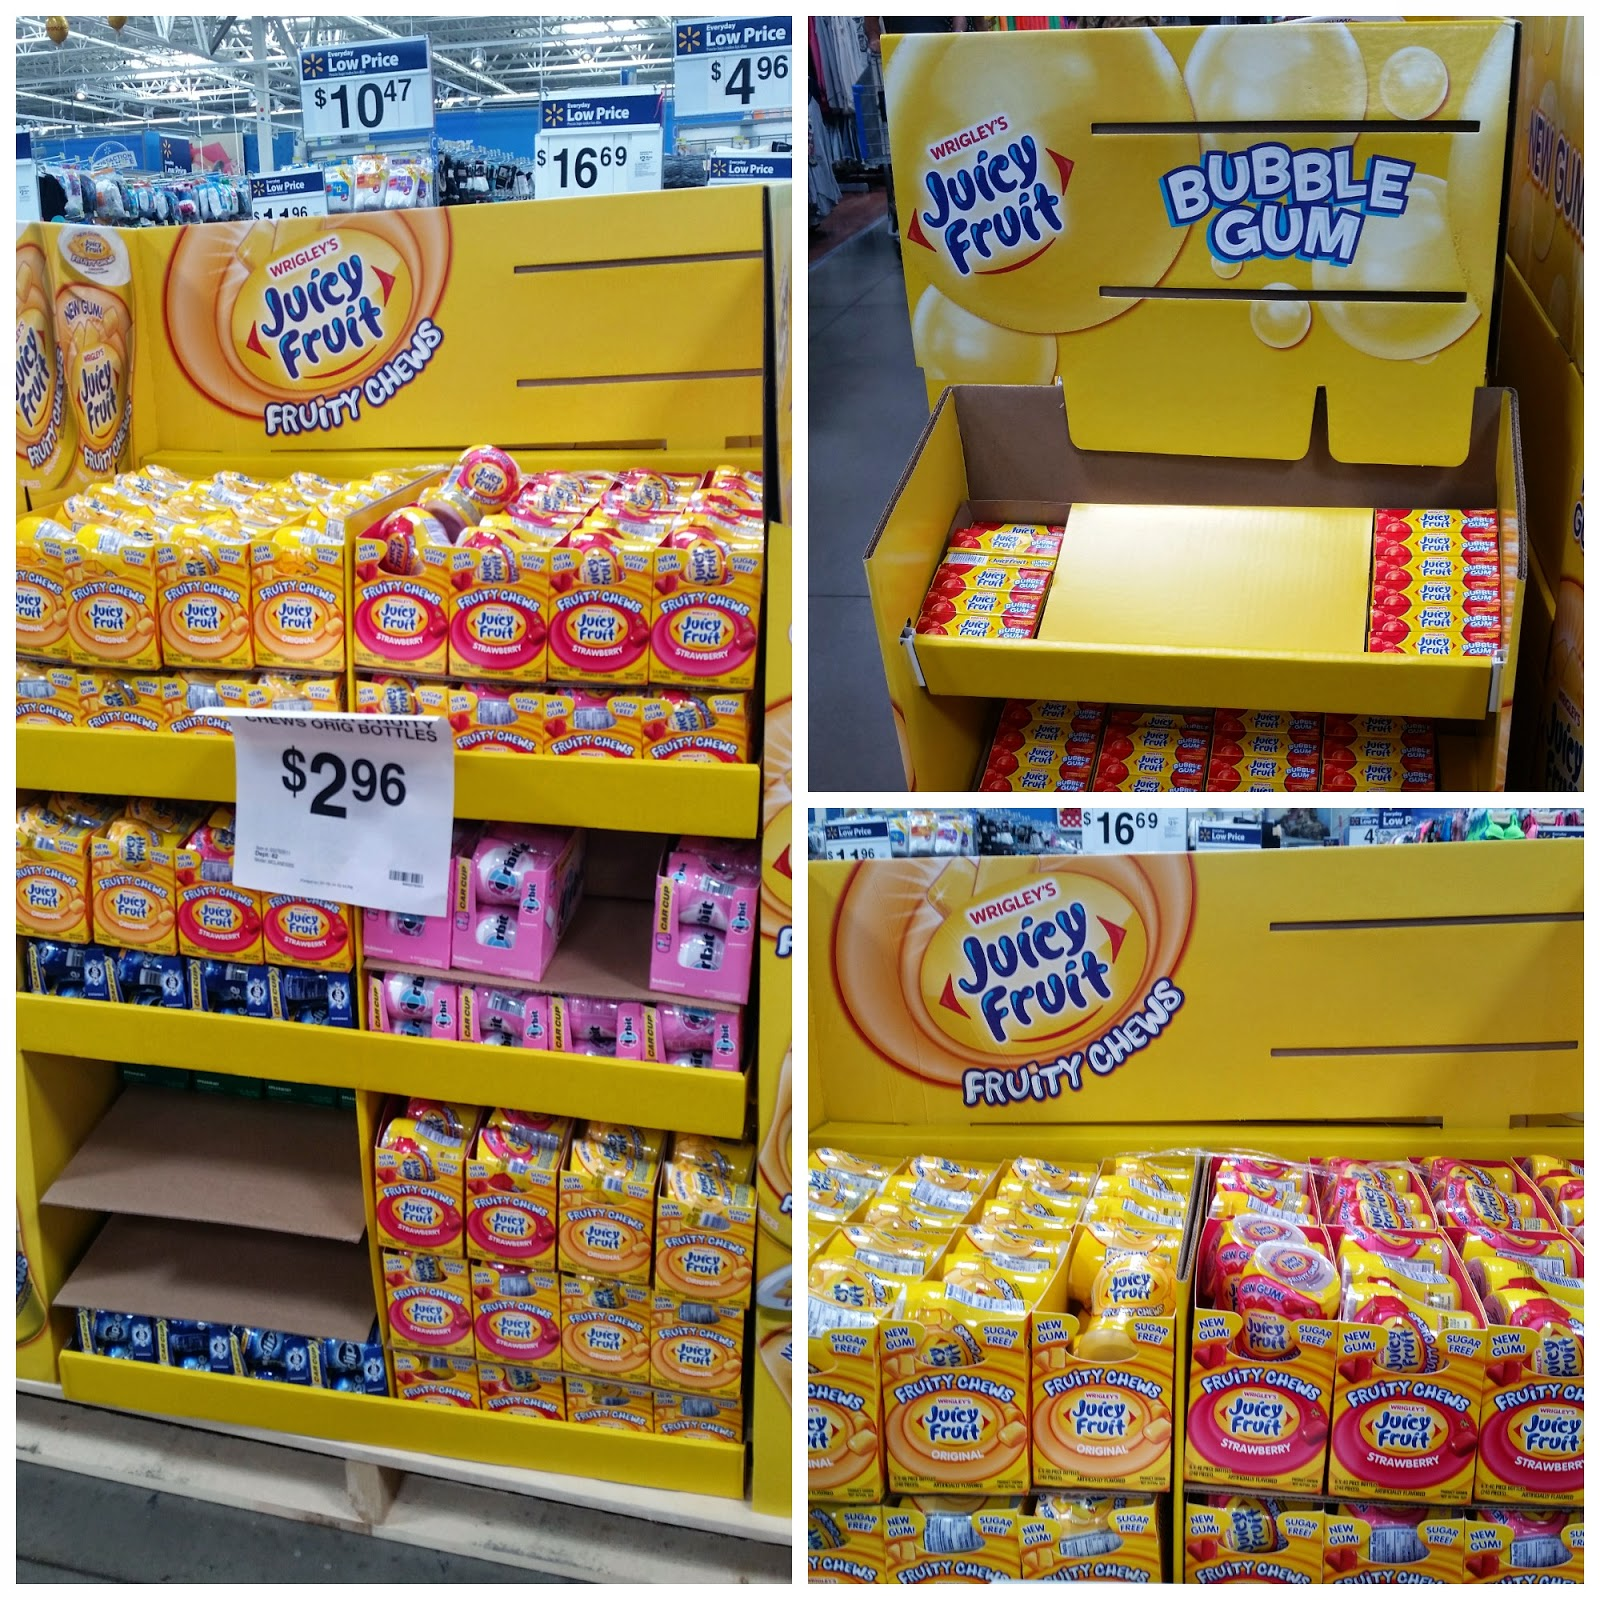 Juicy Fruit Fruity Chews available at Walmart #JuicyFruitFunSide #CollectiveBias